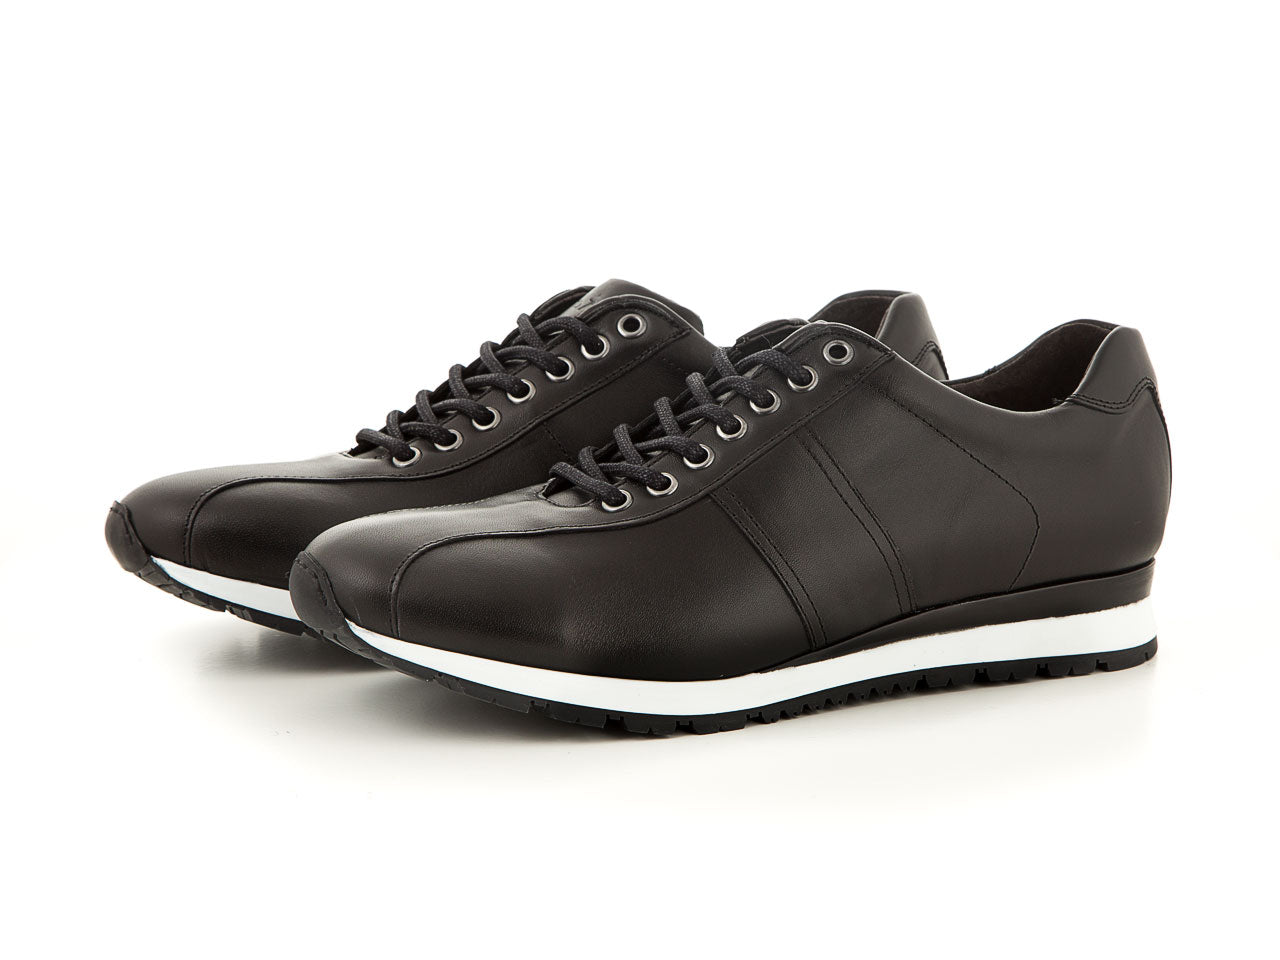 Elegant men's leather shoes all black business | camino71